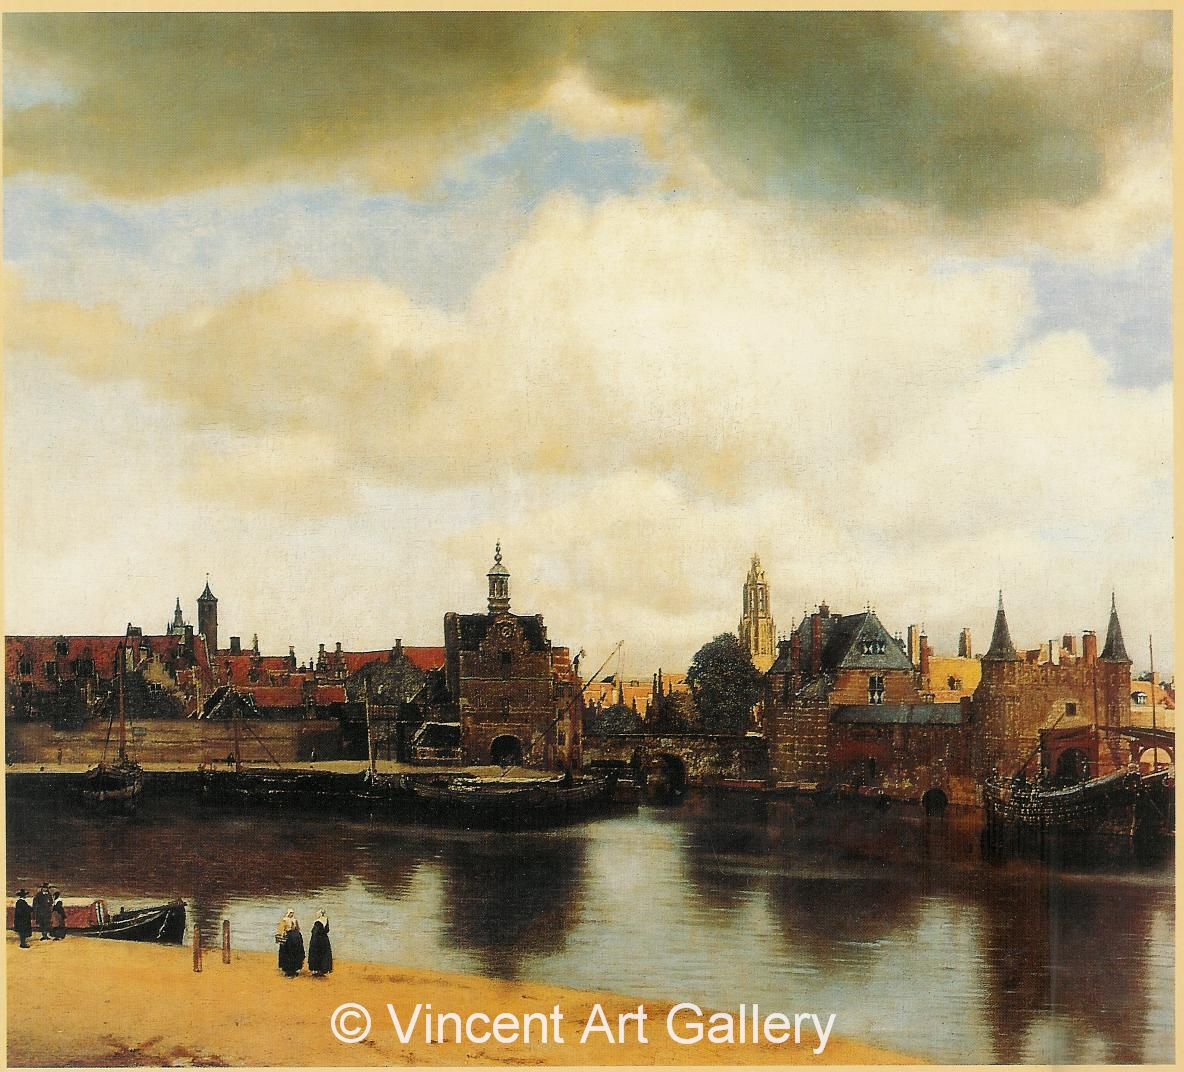 A635, VERMEER, View of Delft 001